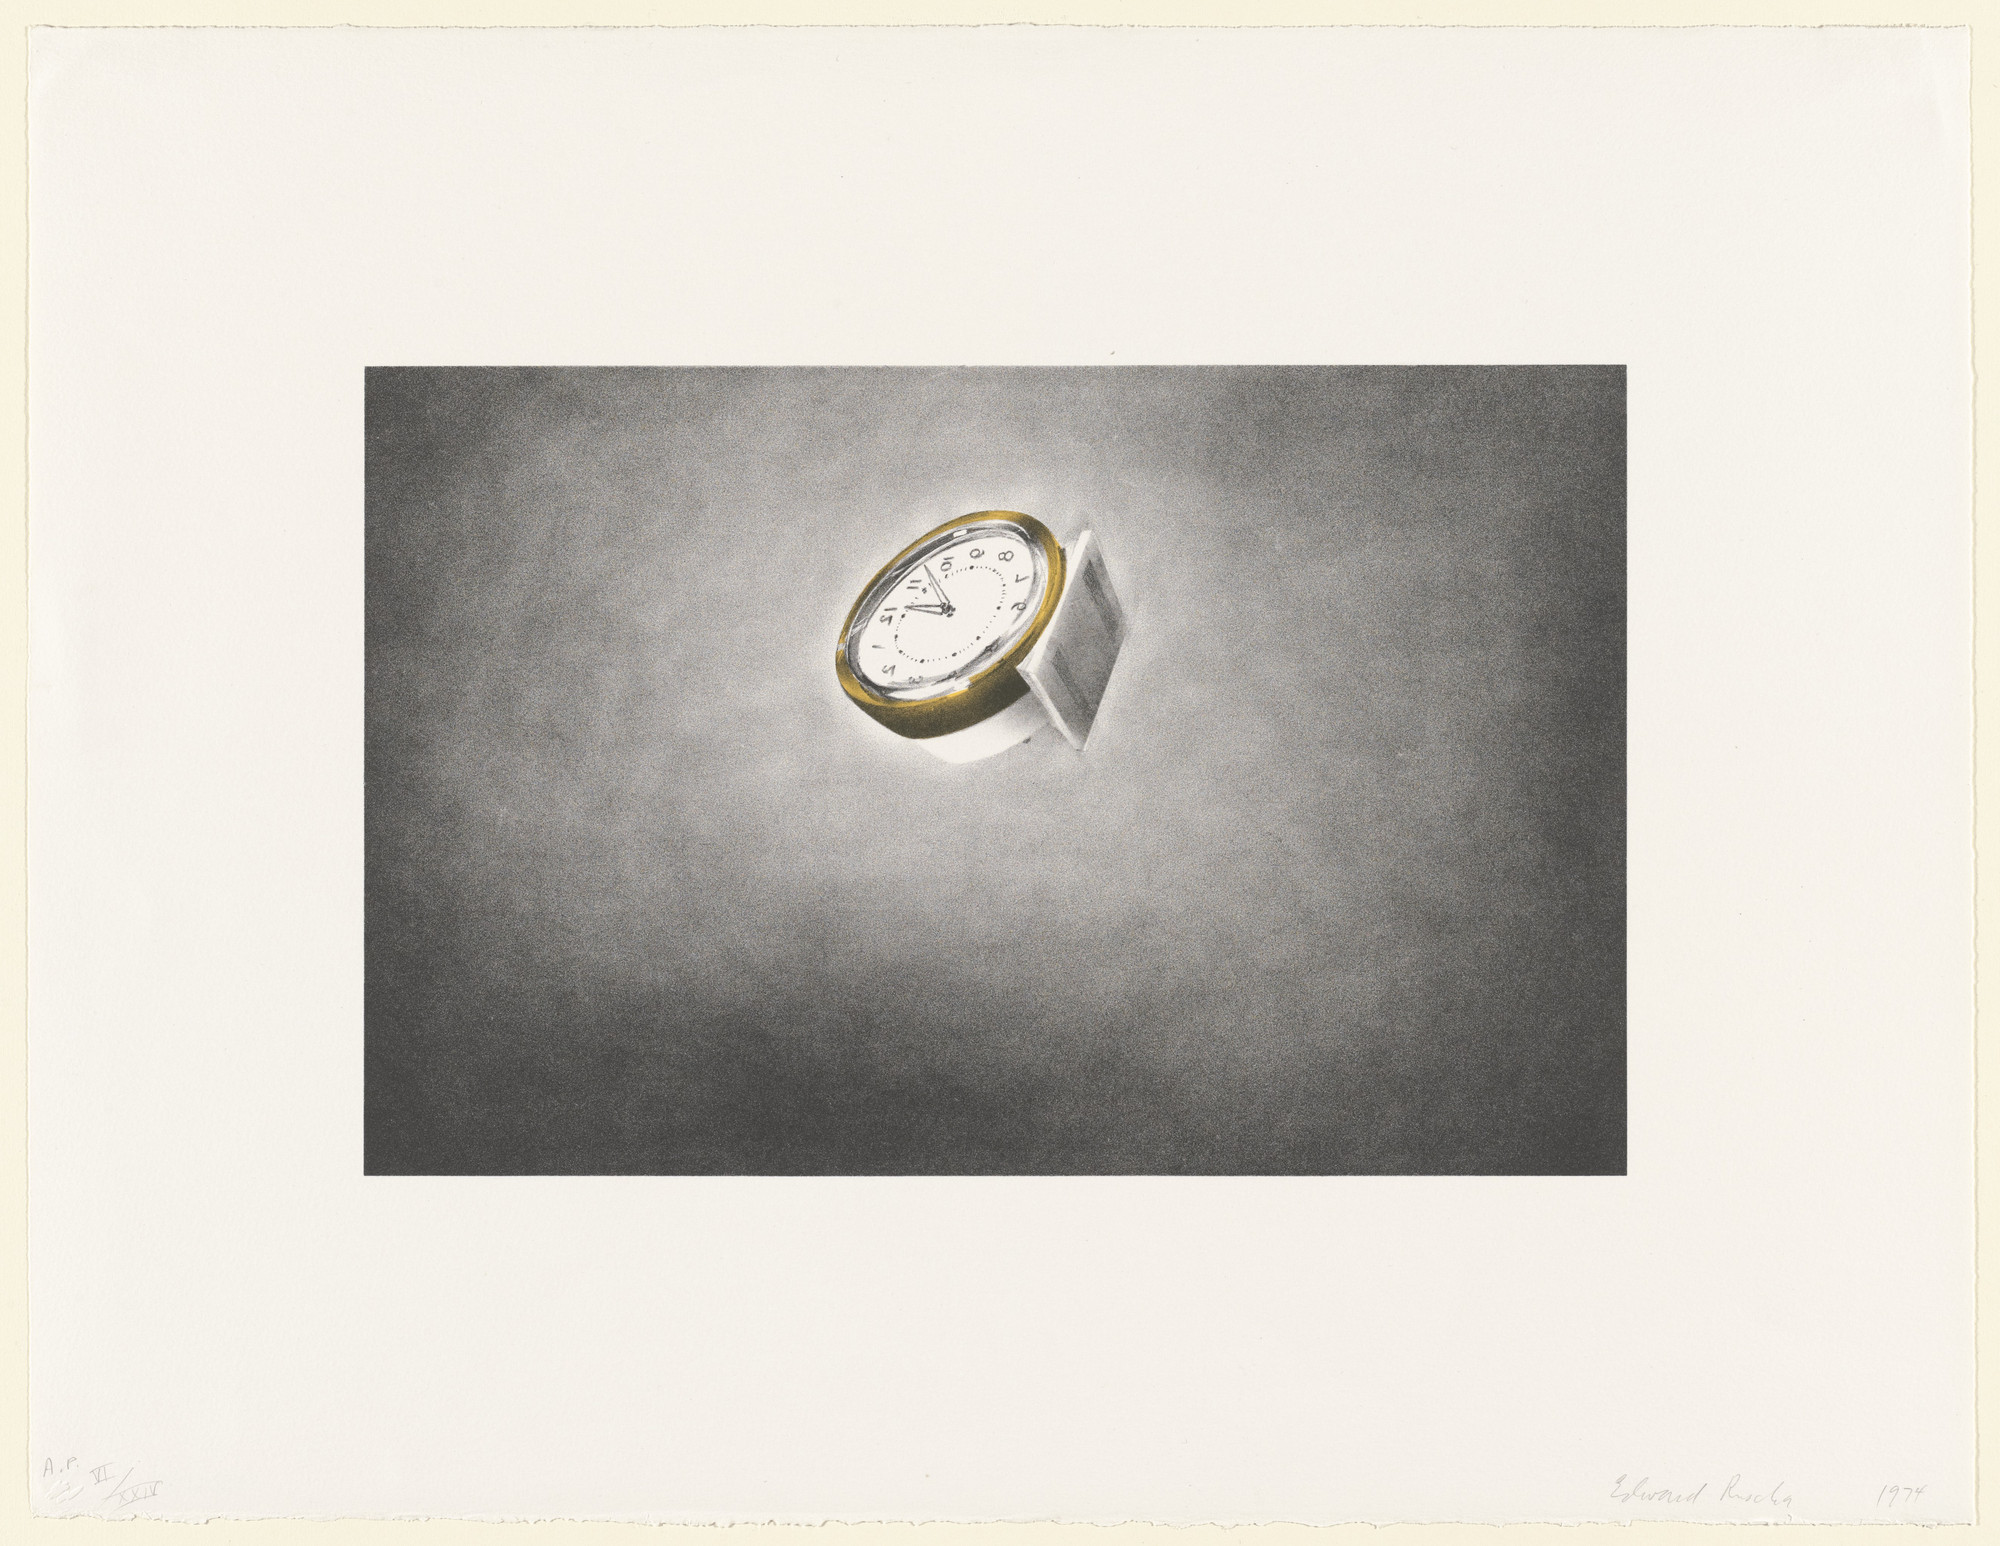 Edward Ruscha. Clock from Domestic Tranquility. 1974